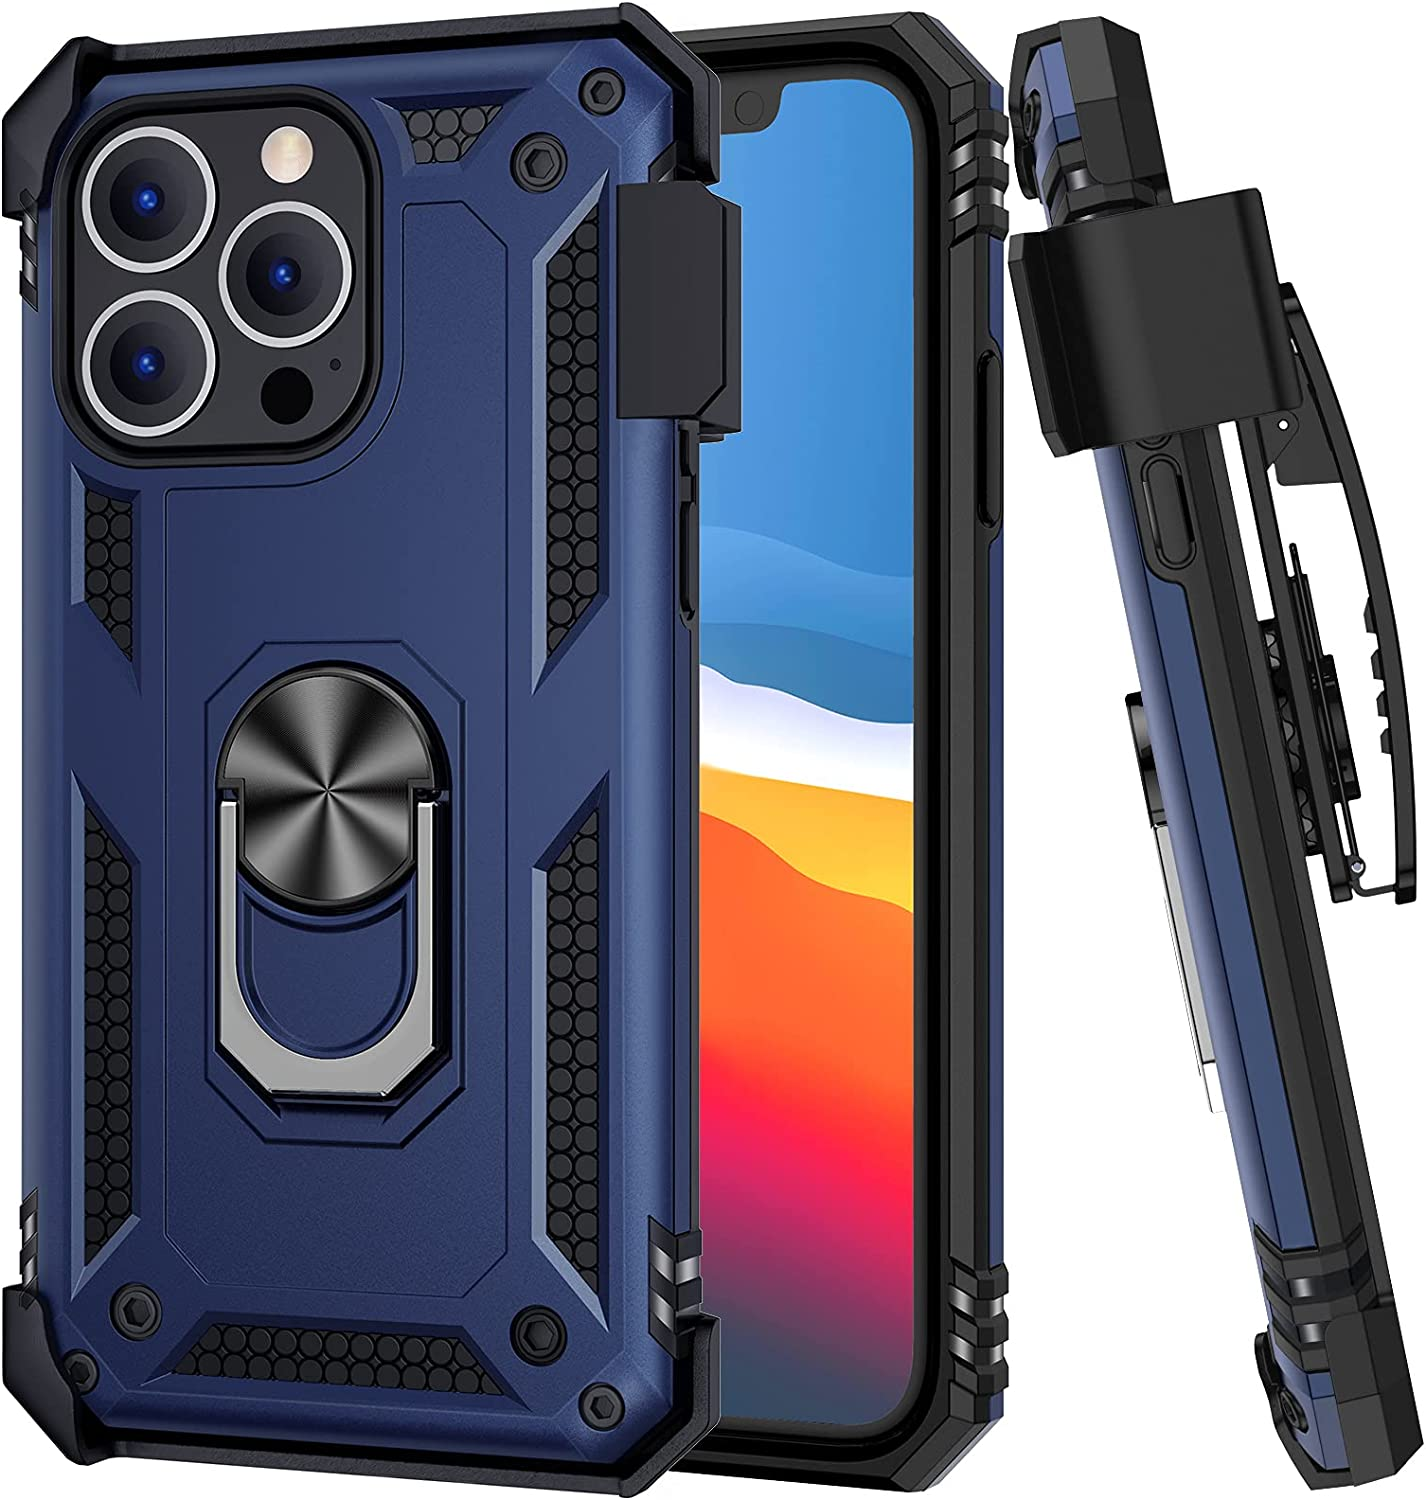 Ruky Clip Case Compatible with iPhone 13 Pro, iPhone 13 Pro Case with Belt Clip Holster Ring Stand Fit for Magnetic Car Mount Anti Scratch Phone Case for iPhone 13 Pro 6.1